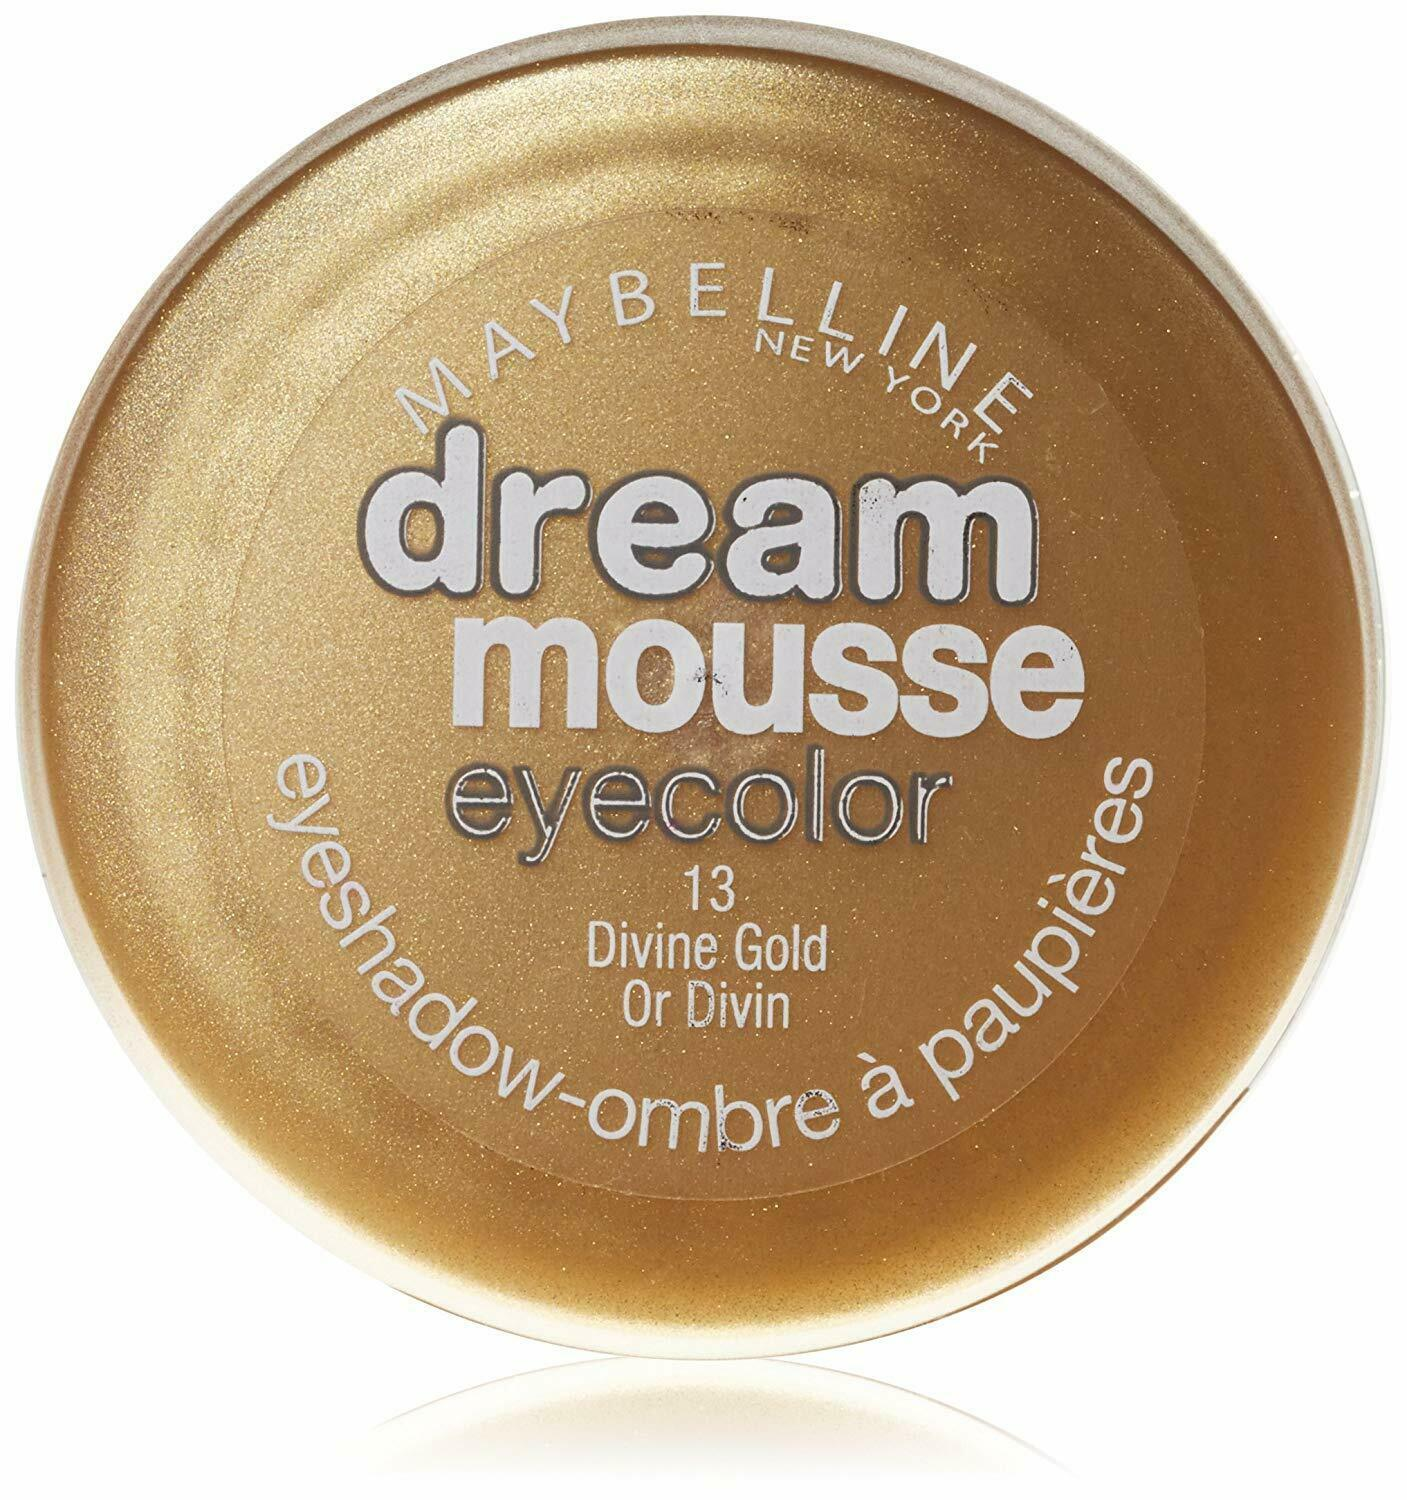 Primary image for Maybelline Dream Mousse Eyecolor 13 Divine Gold